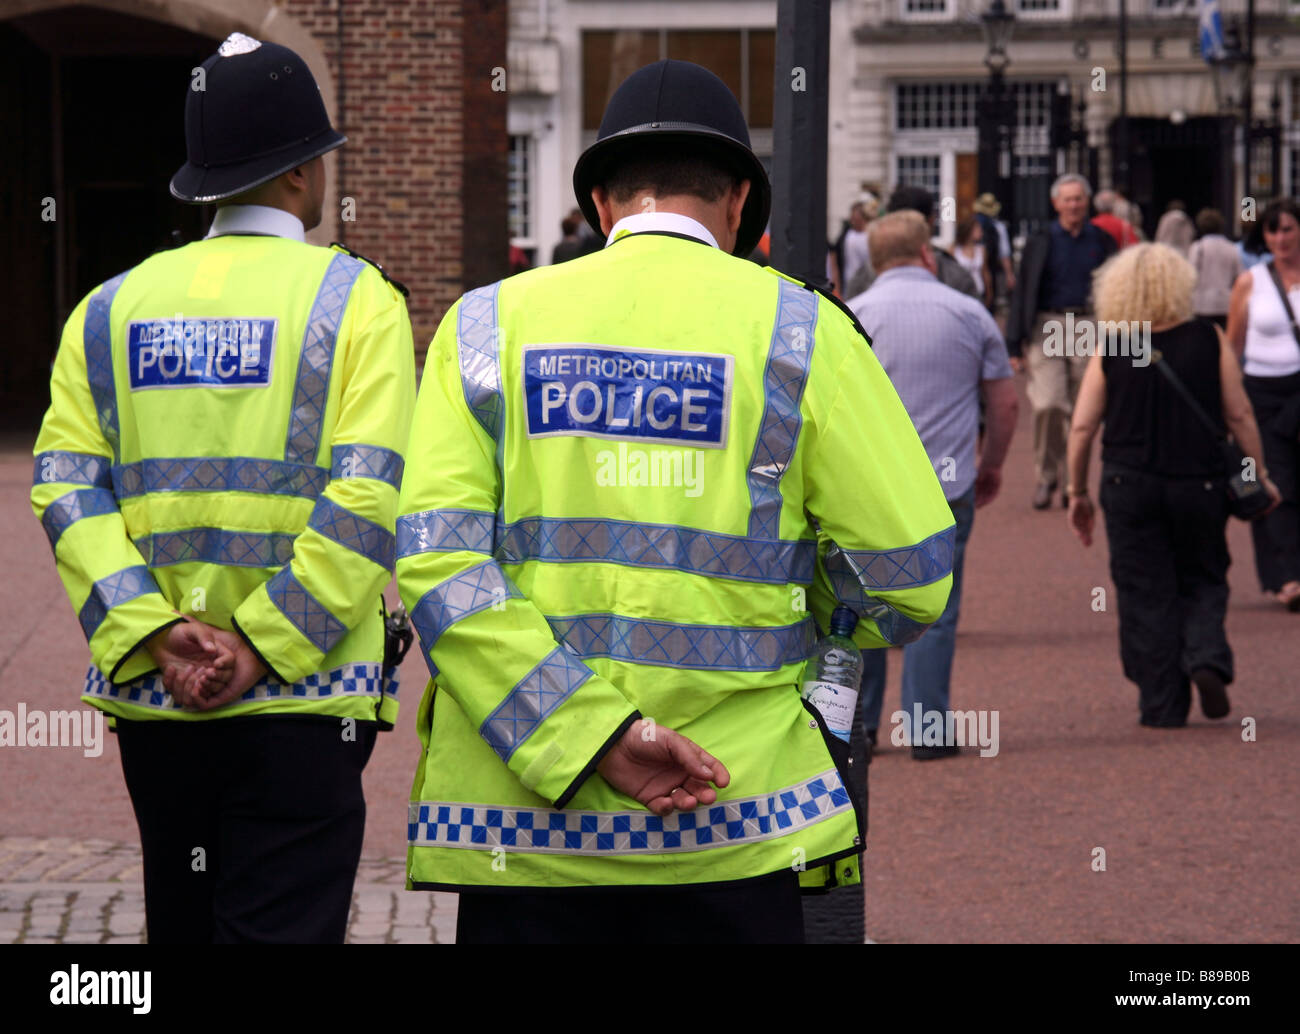 Police Officers, The Mall, London Stock Photo